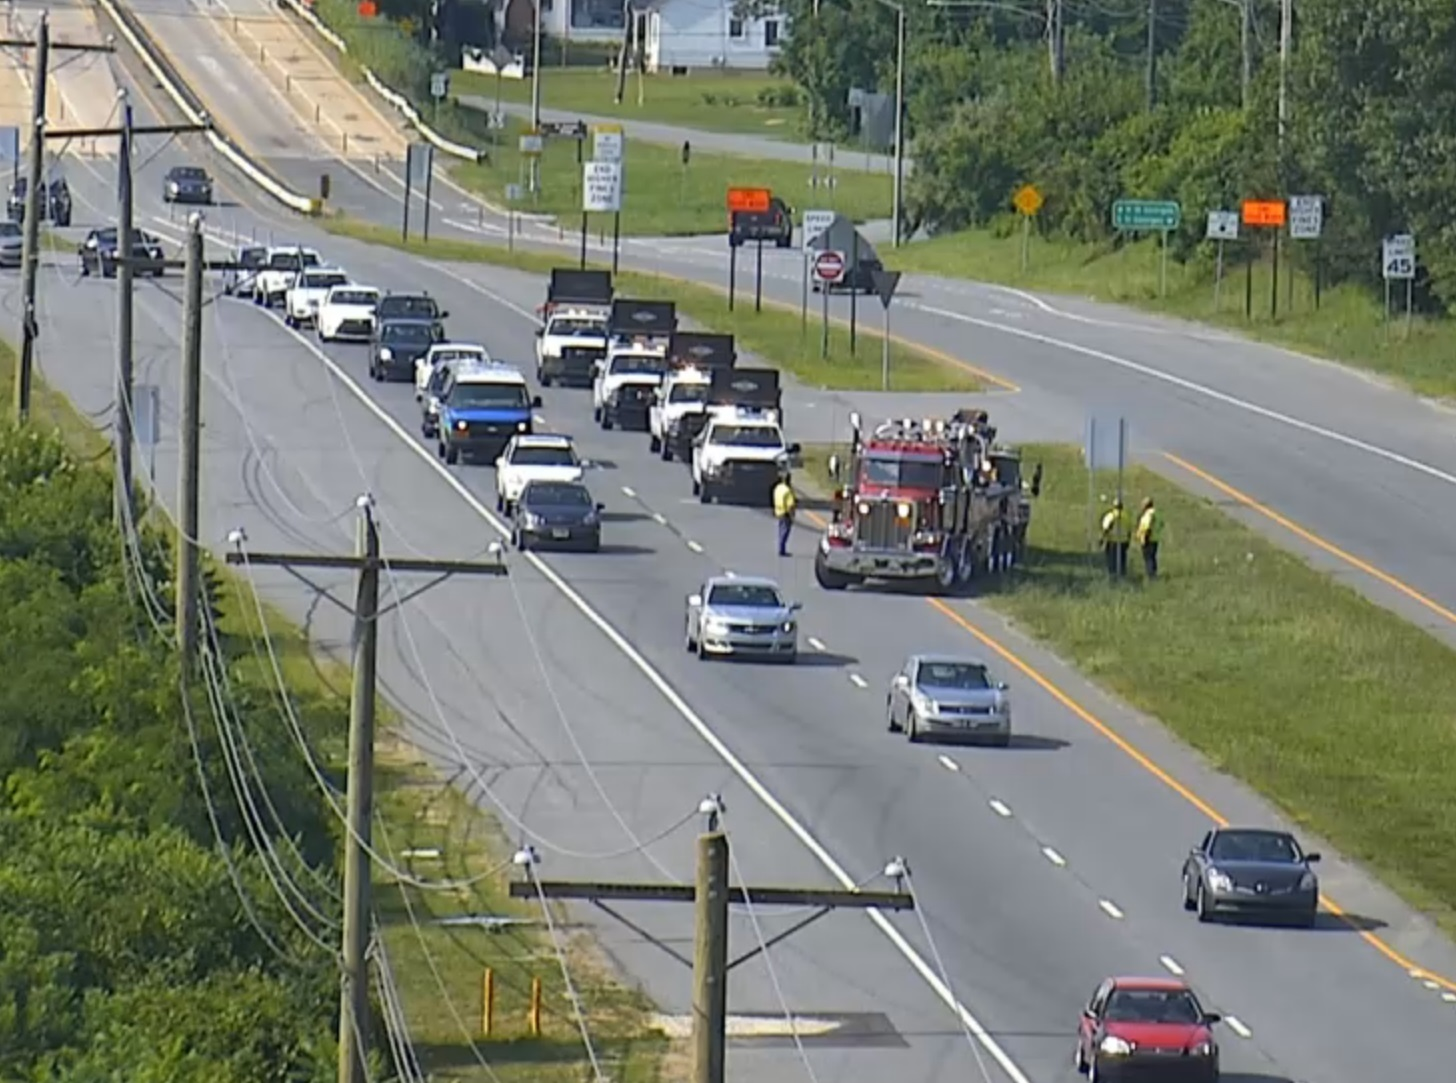 Two Seriously Injured In Route 13 Accident In Middletown